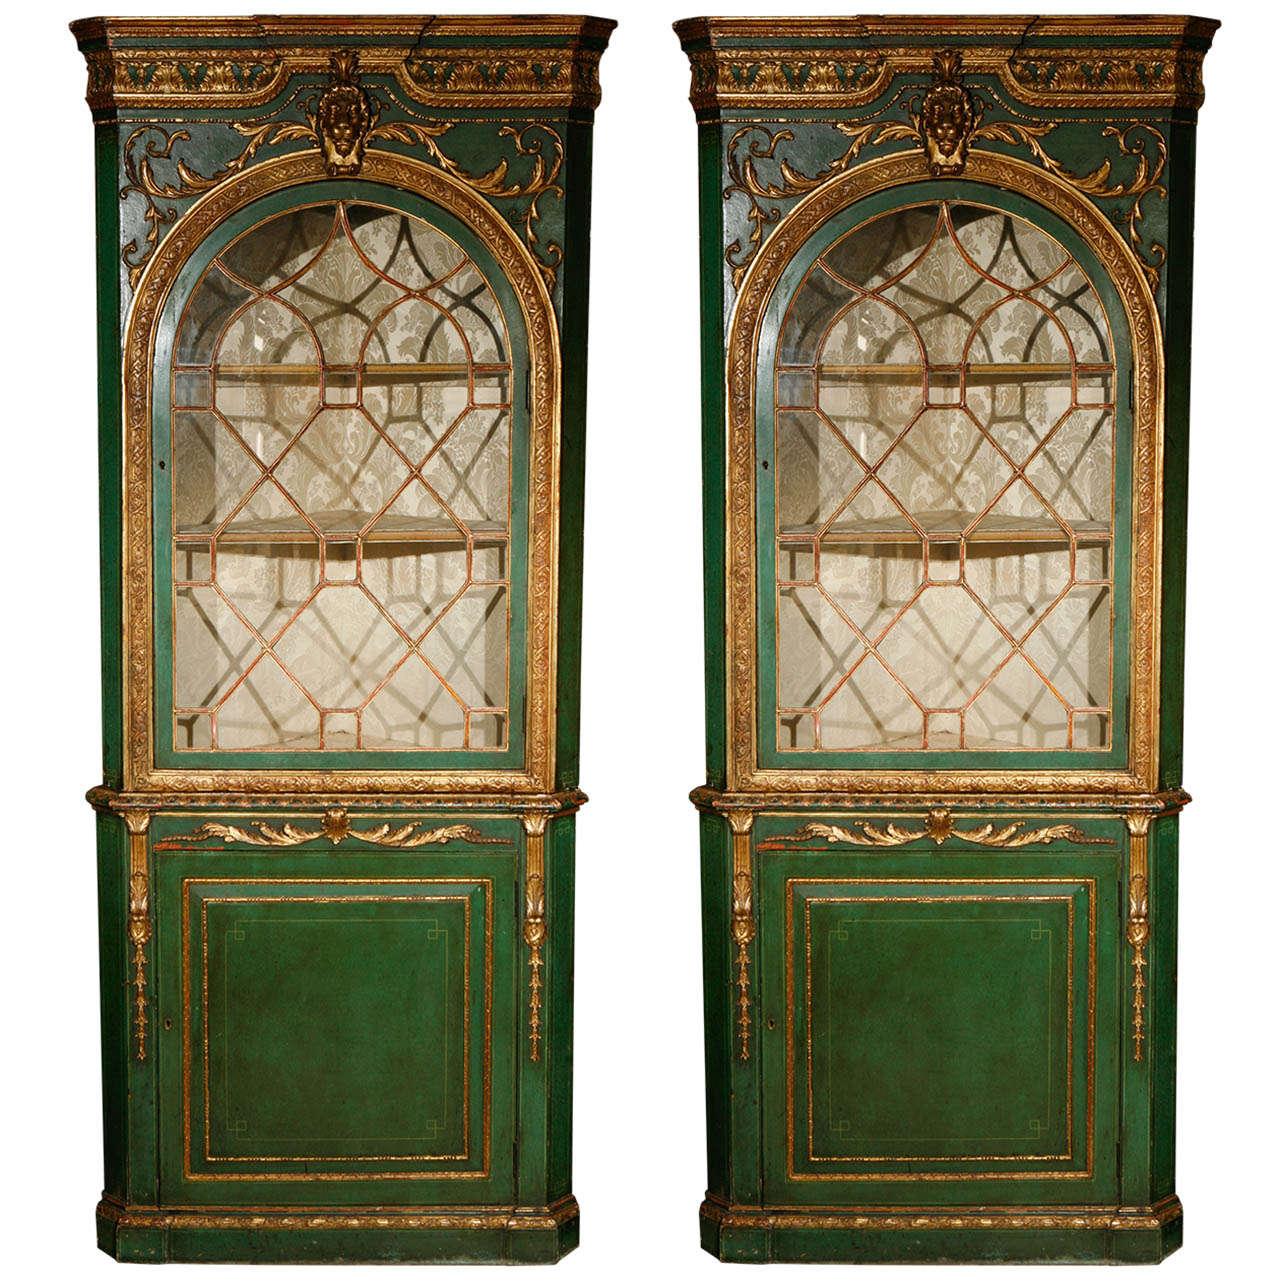 Pair of English Giltwood and Painted Two-Part Corner Cabinets